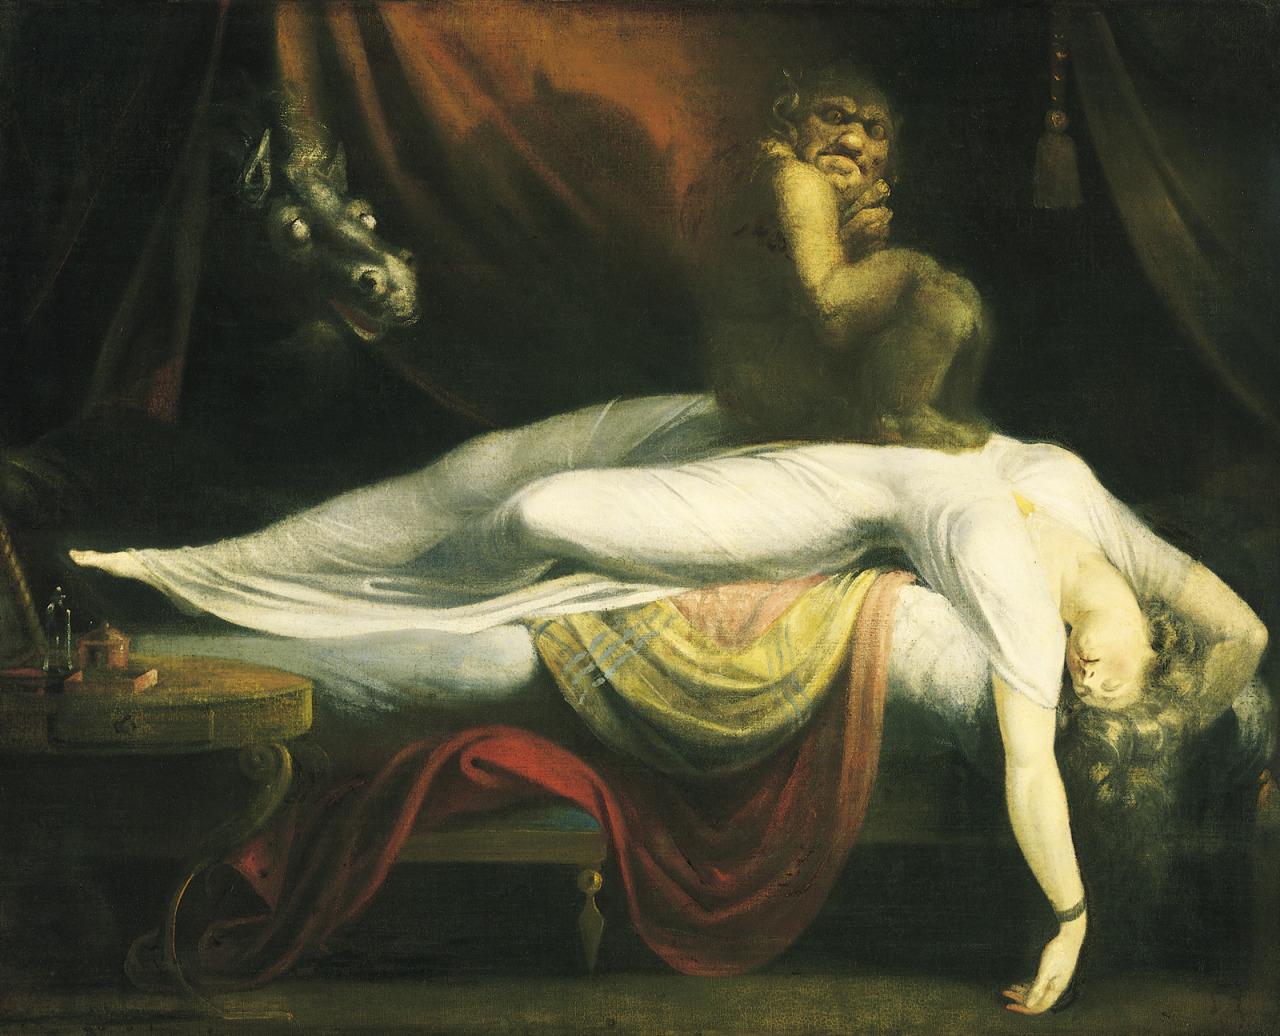 Johann Henry Fuseli's The Nightmare  When I was 5, i think I was 5, we had this book. It was about all the scary things a 5 year old would be afraid of; hobgoblins, spirits, monsters, ghouls, etc. I remember it had a purple and black wave pattern on the cover and it had this distinct smell. I can remember the smell, I couldn't tell you what it is, but if I ever encountered that smell again that book will come to mind.   The book had etchings in it. I remember the one story about the incubus (not really a story for a 5 year old, but when you're 5 all the stuff you know as an adult you don't know about nor care), and the etching they had for the story was the one up above, The Nightmare by John Henry Fuseli. That image has stuck with me since then. I don't particularly know what exactly about it was so intriguing to a 5 year old me but it was embedded forever. I do believe it greatly influenced my affinity for baroque era and lighting as well as nightmarish, dark nuance in most of my editorial work. I can safely say this image represents the beginning of something I would only later understand.   ( I also have to credit the Caravaggio that was always in our dining room since I could remember)